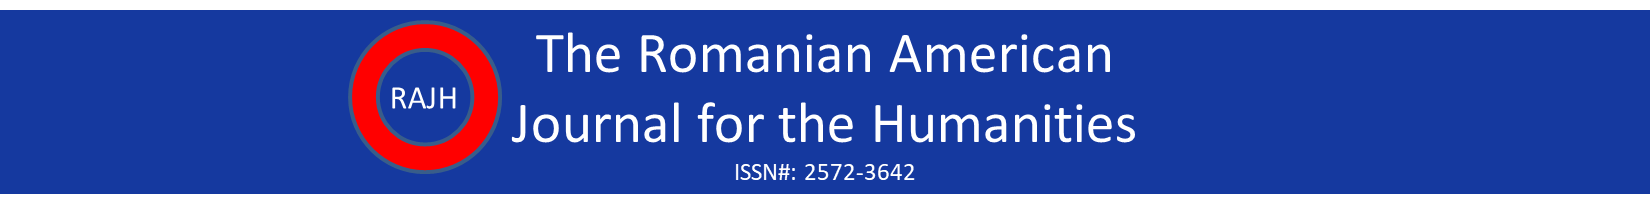 Romanian American Journal for the Humanities